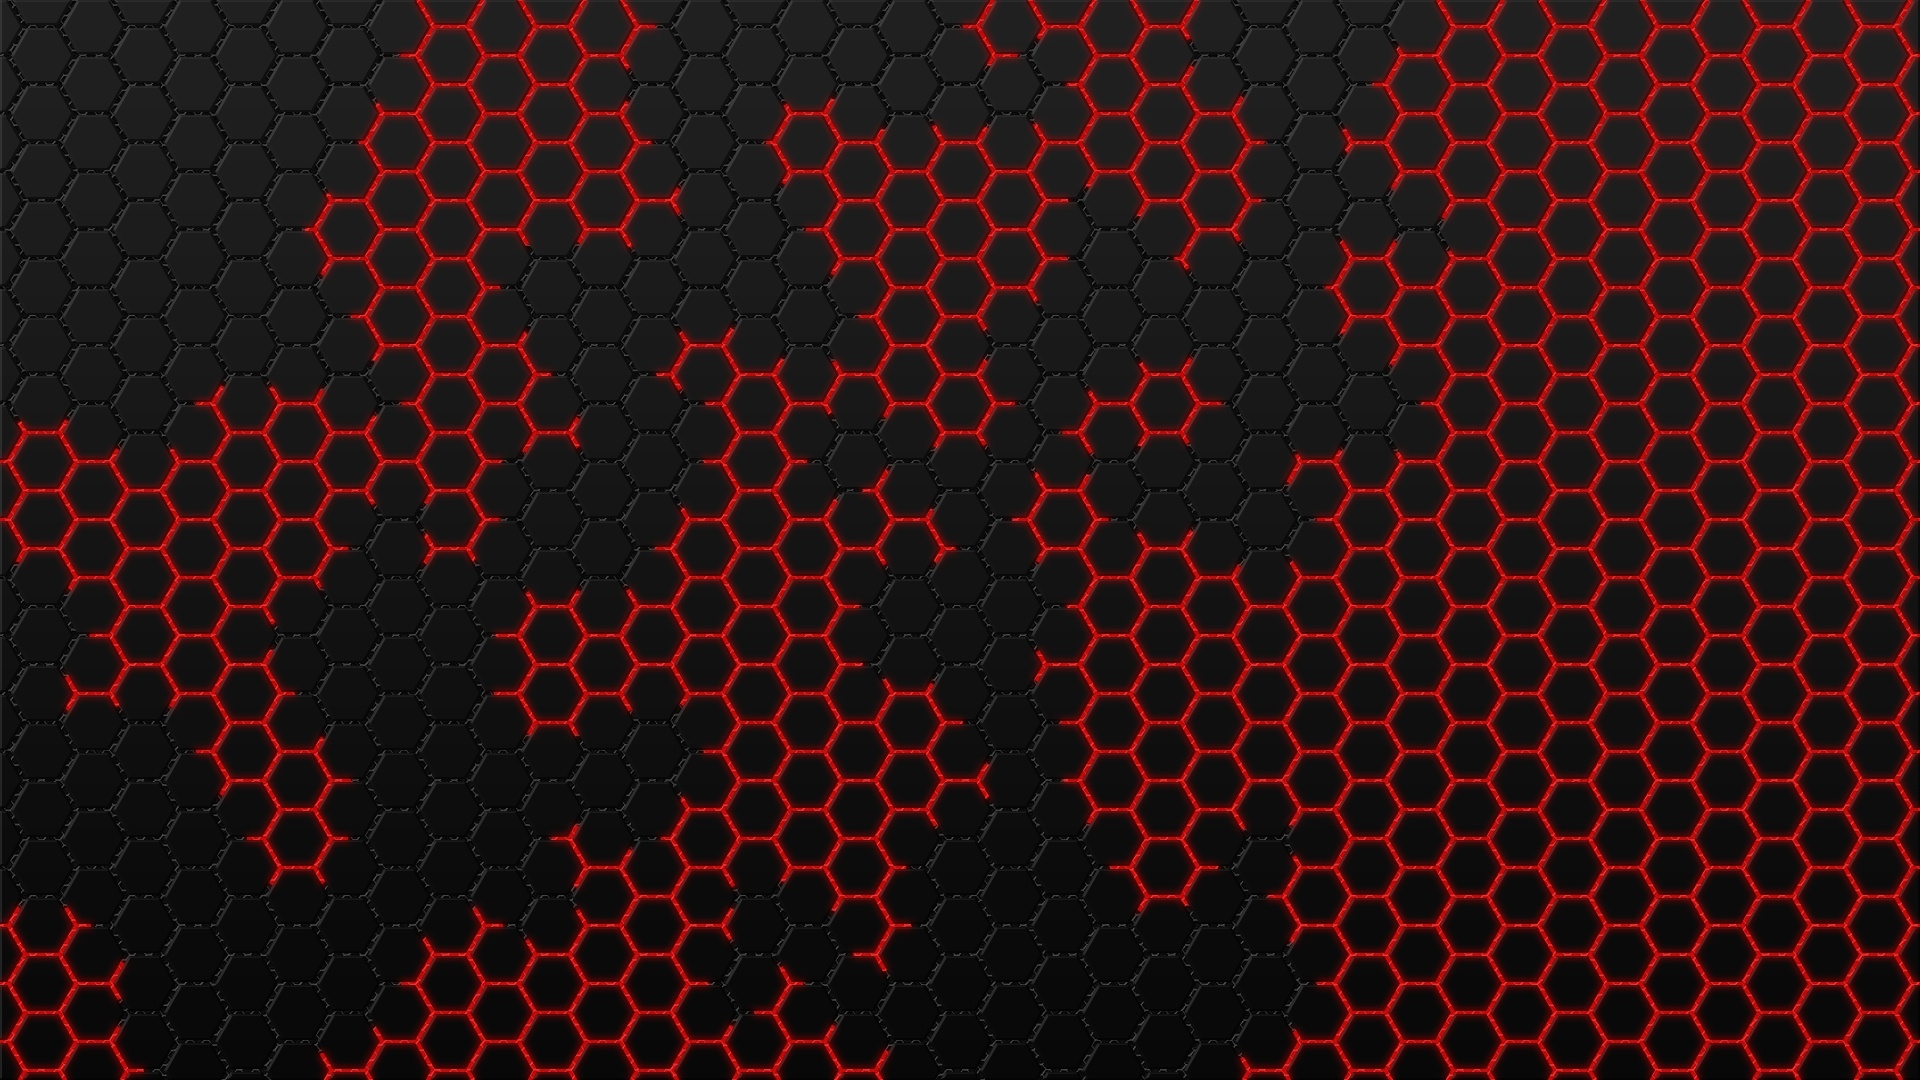 Black And Red Hexagon Wallpaper Hd Artist 4k Wallpapers Images